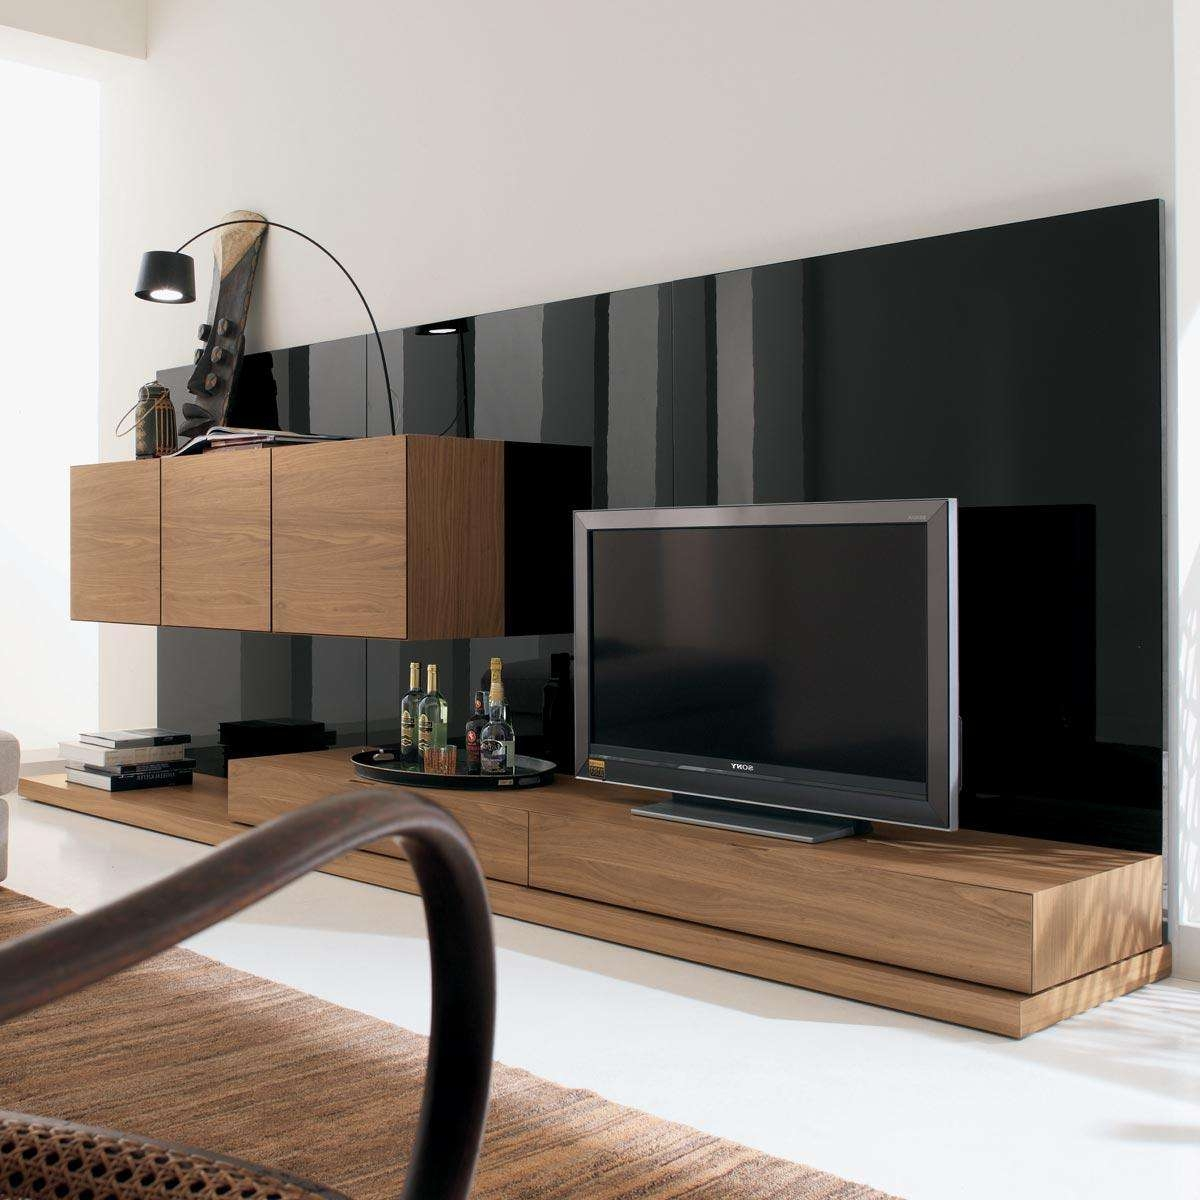 Solid Wood Tv Stand Also Long Tv Stand And Black Wall Living Room Intended For Contemporary Tv Cabinets (View 20 of 20)